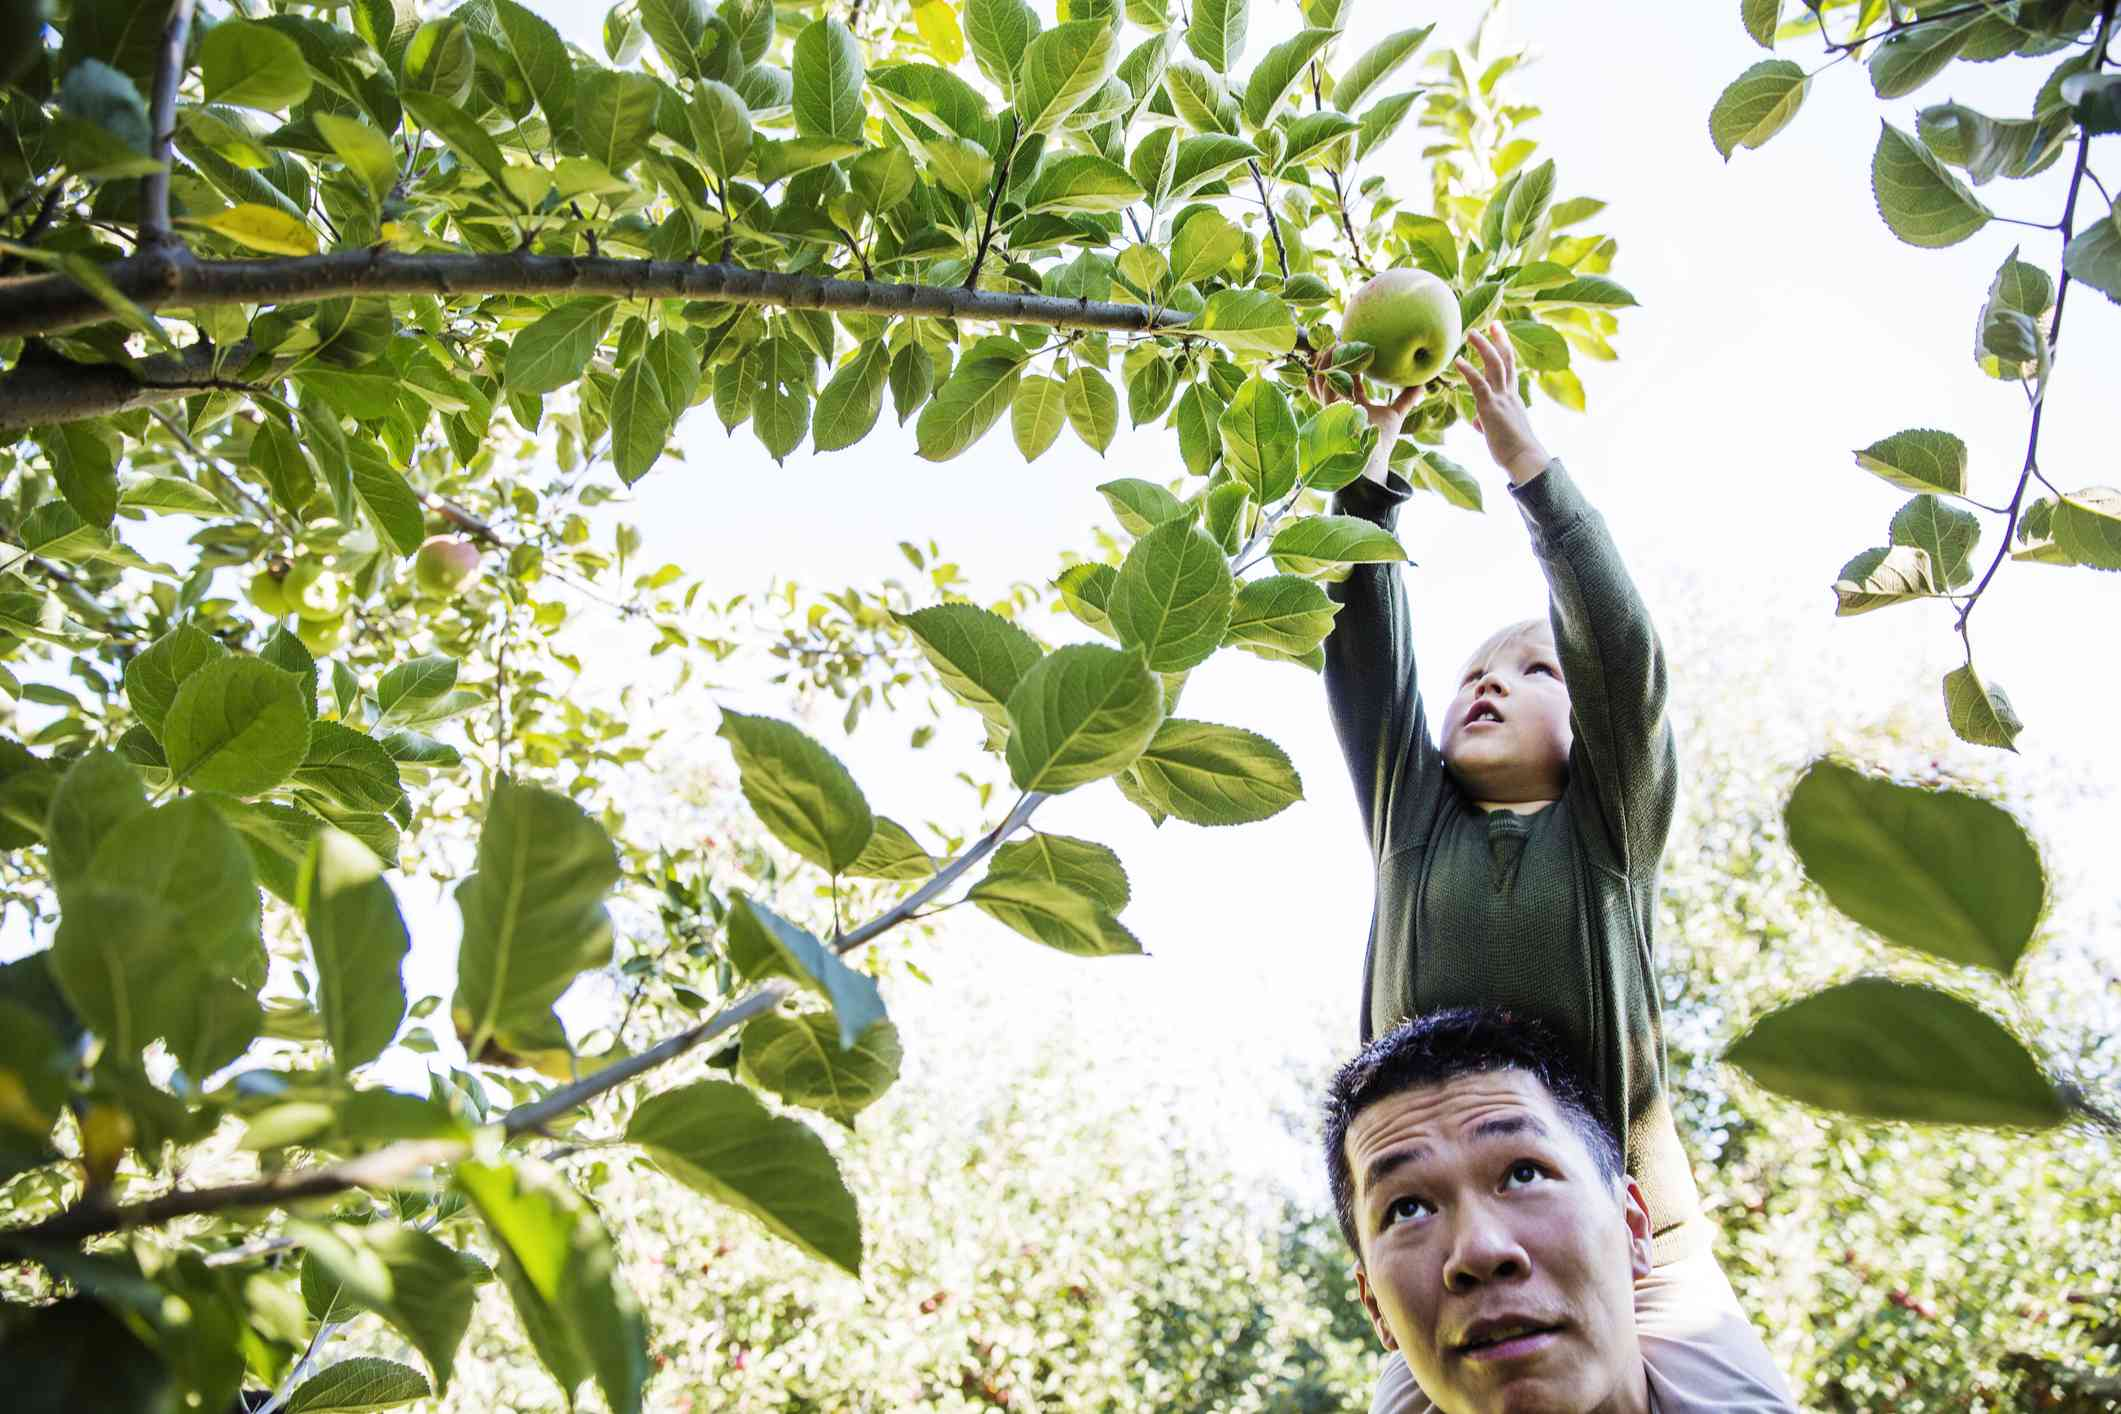 Father carrying son on shoulders while harvesting in orchard